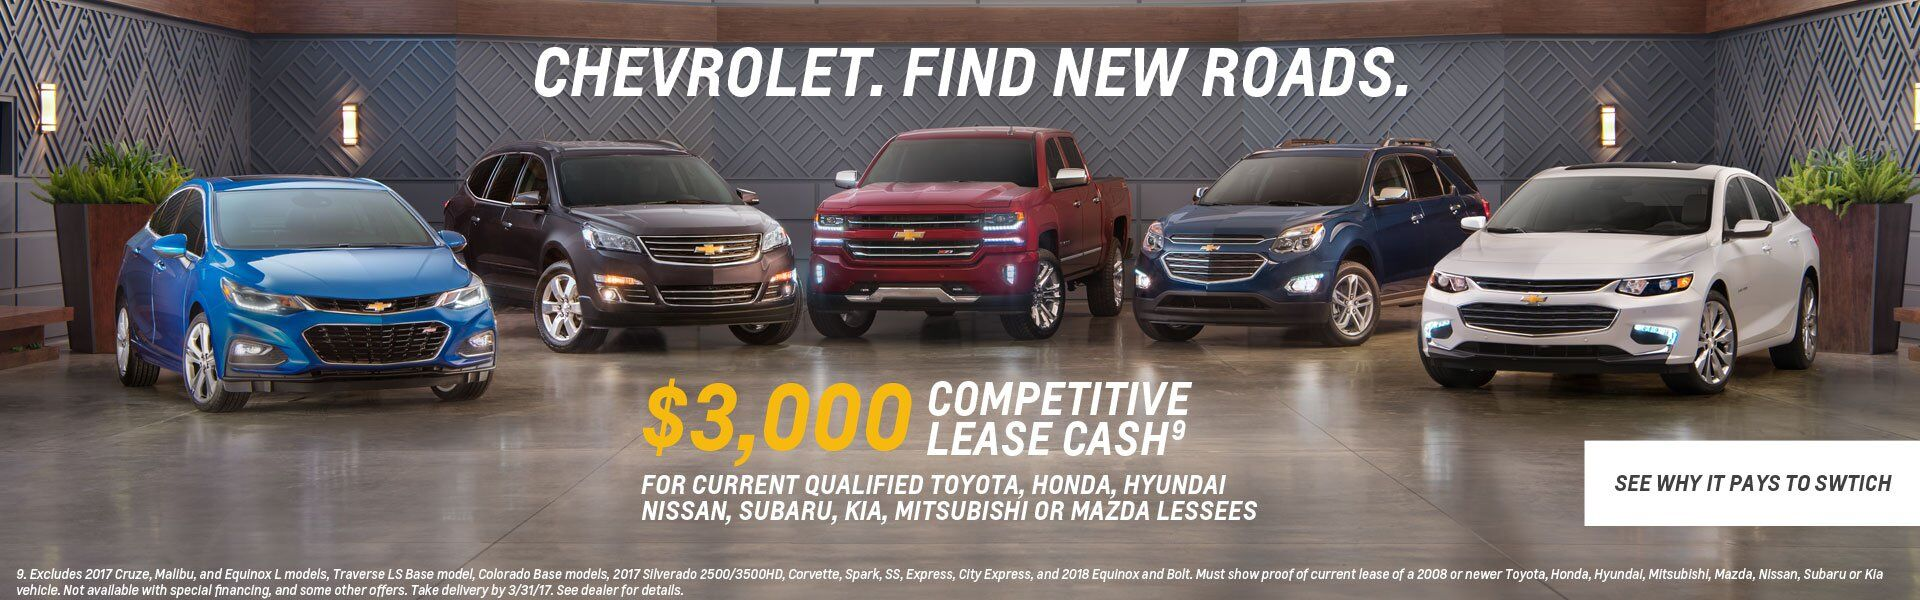 Chevy Competitive Lease Cash